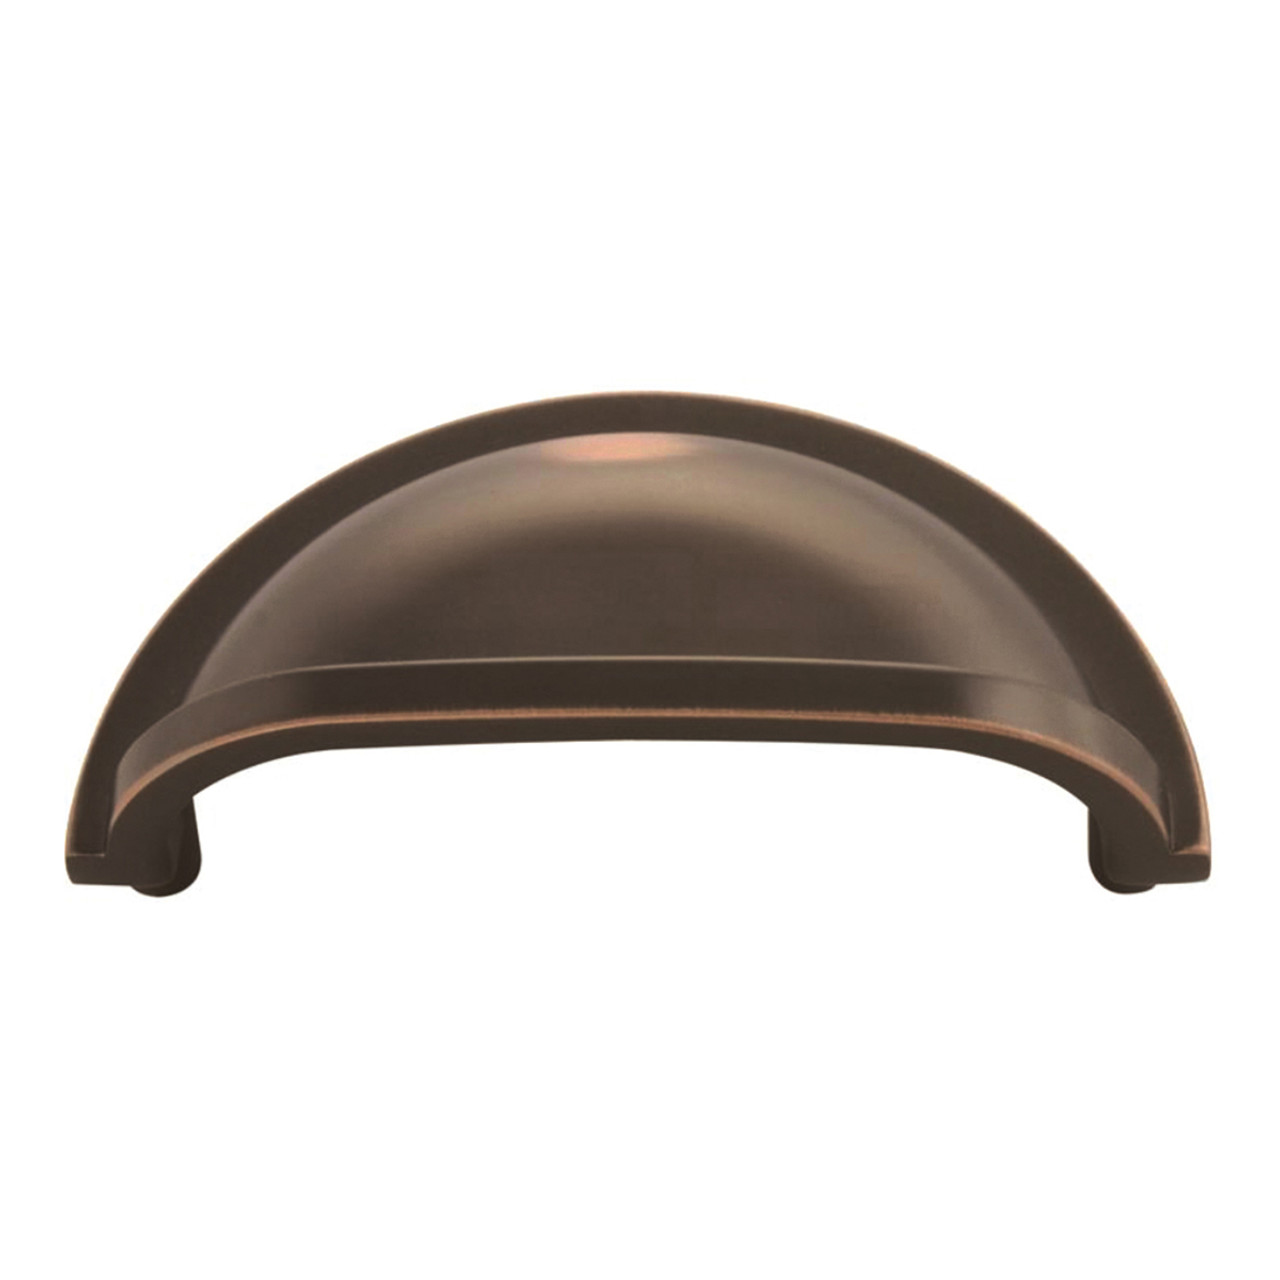 Hickory Hardware P14444-OBH 3-Inch Metropolis Pull Oil-Rubbed Bronze Highlighted